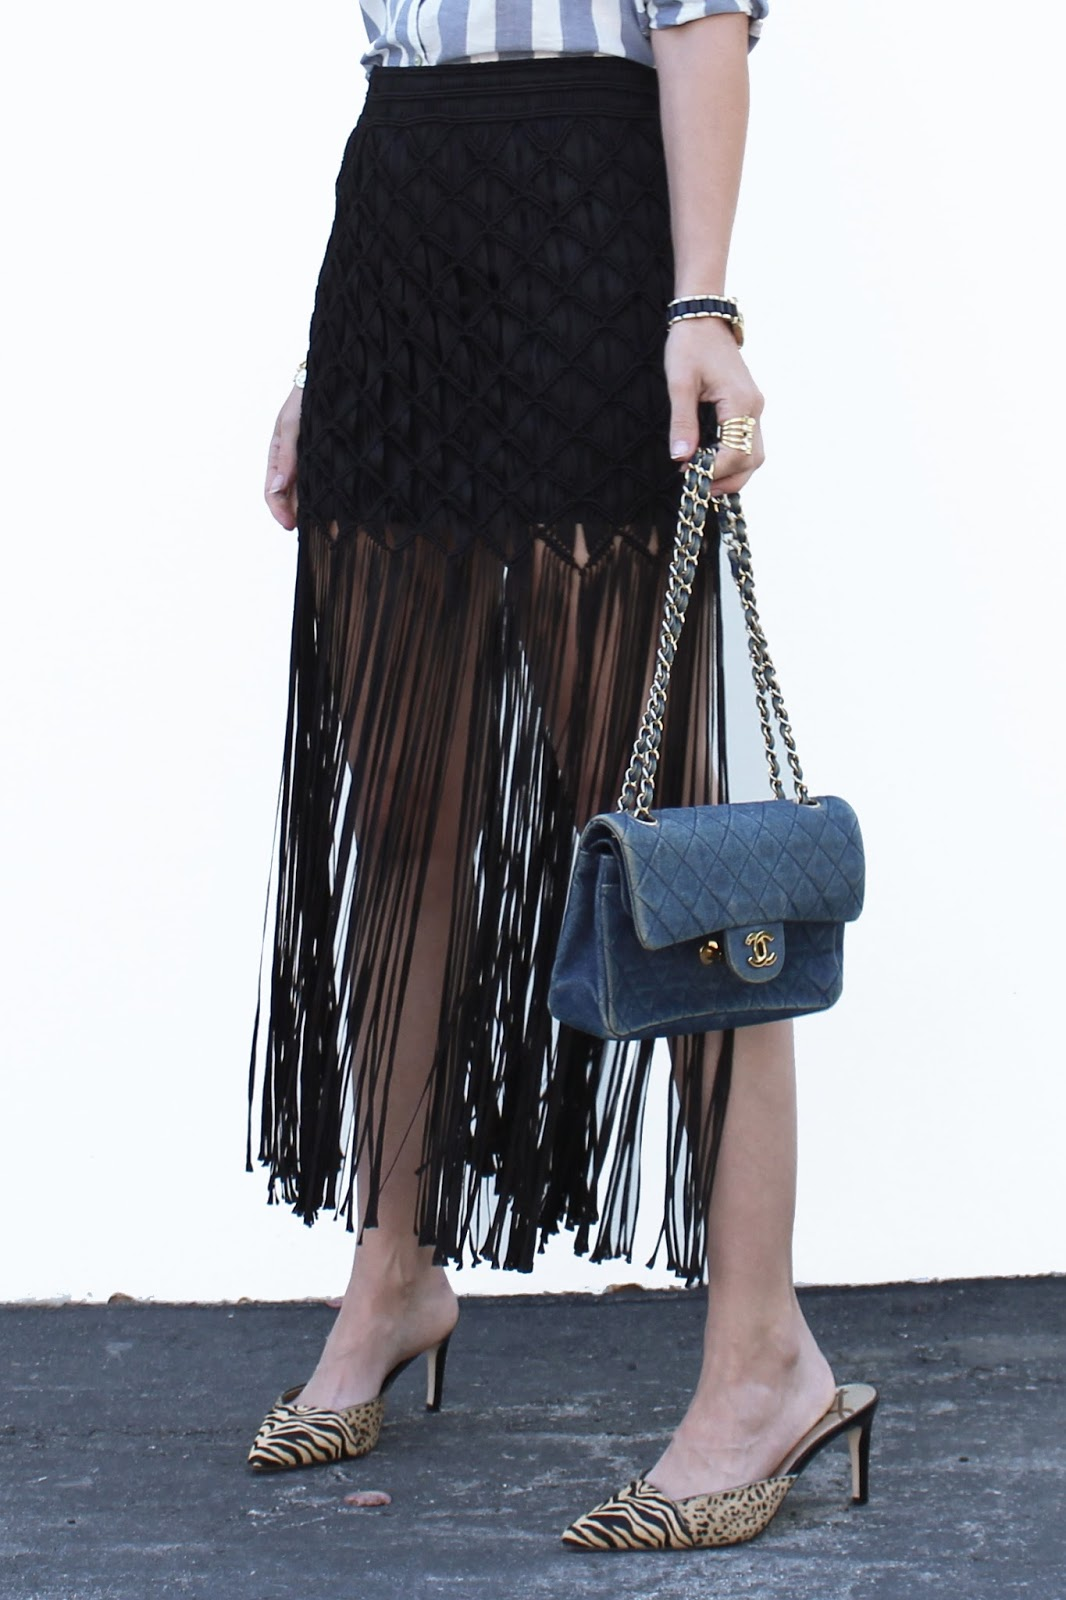 fringe skirt mules summer outfit